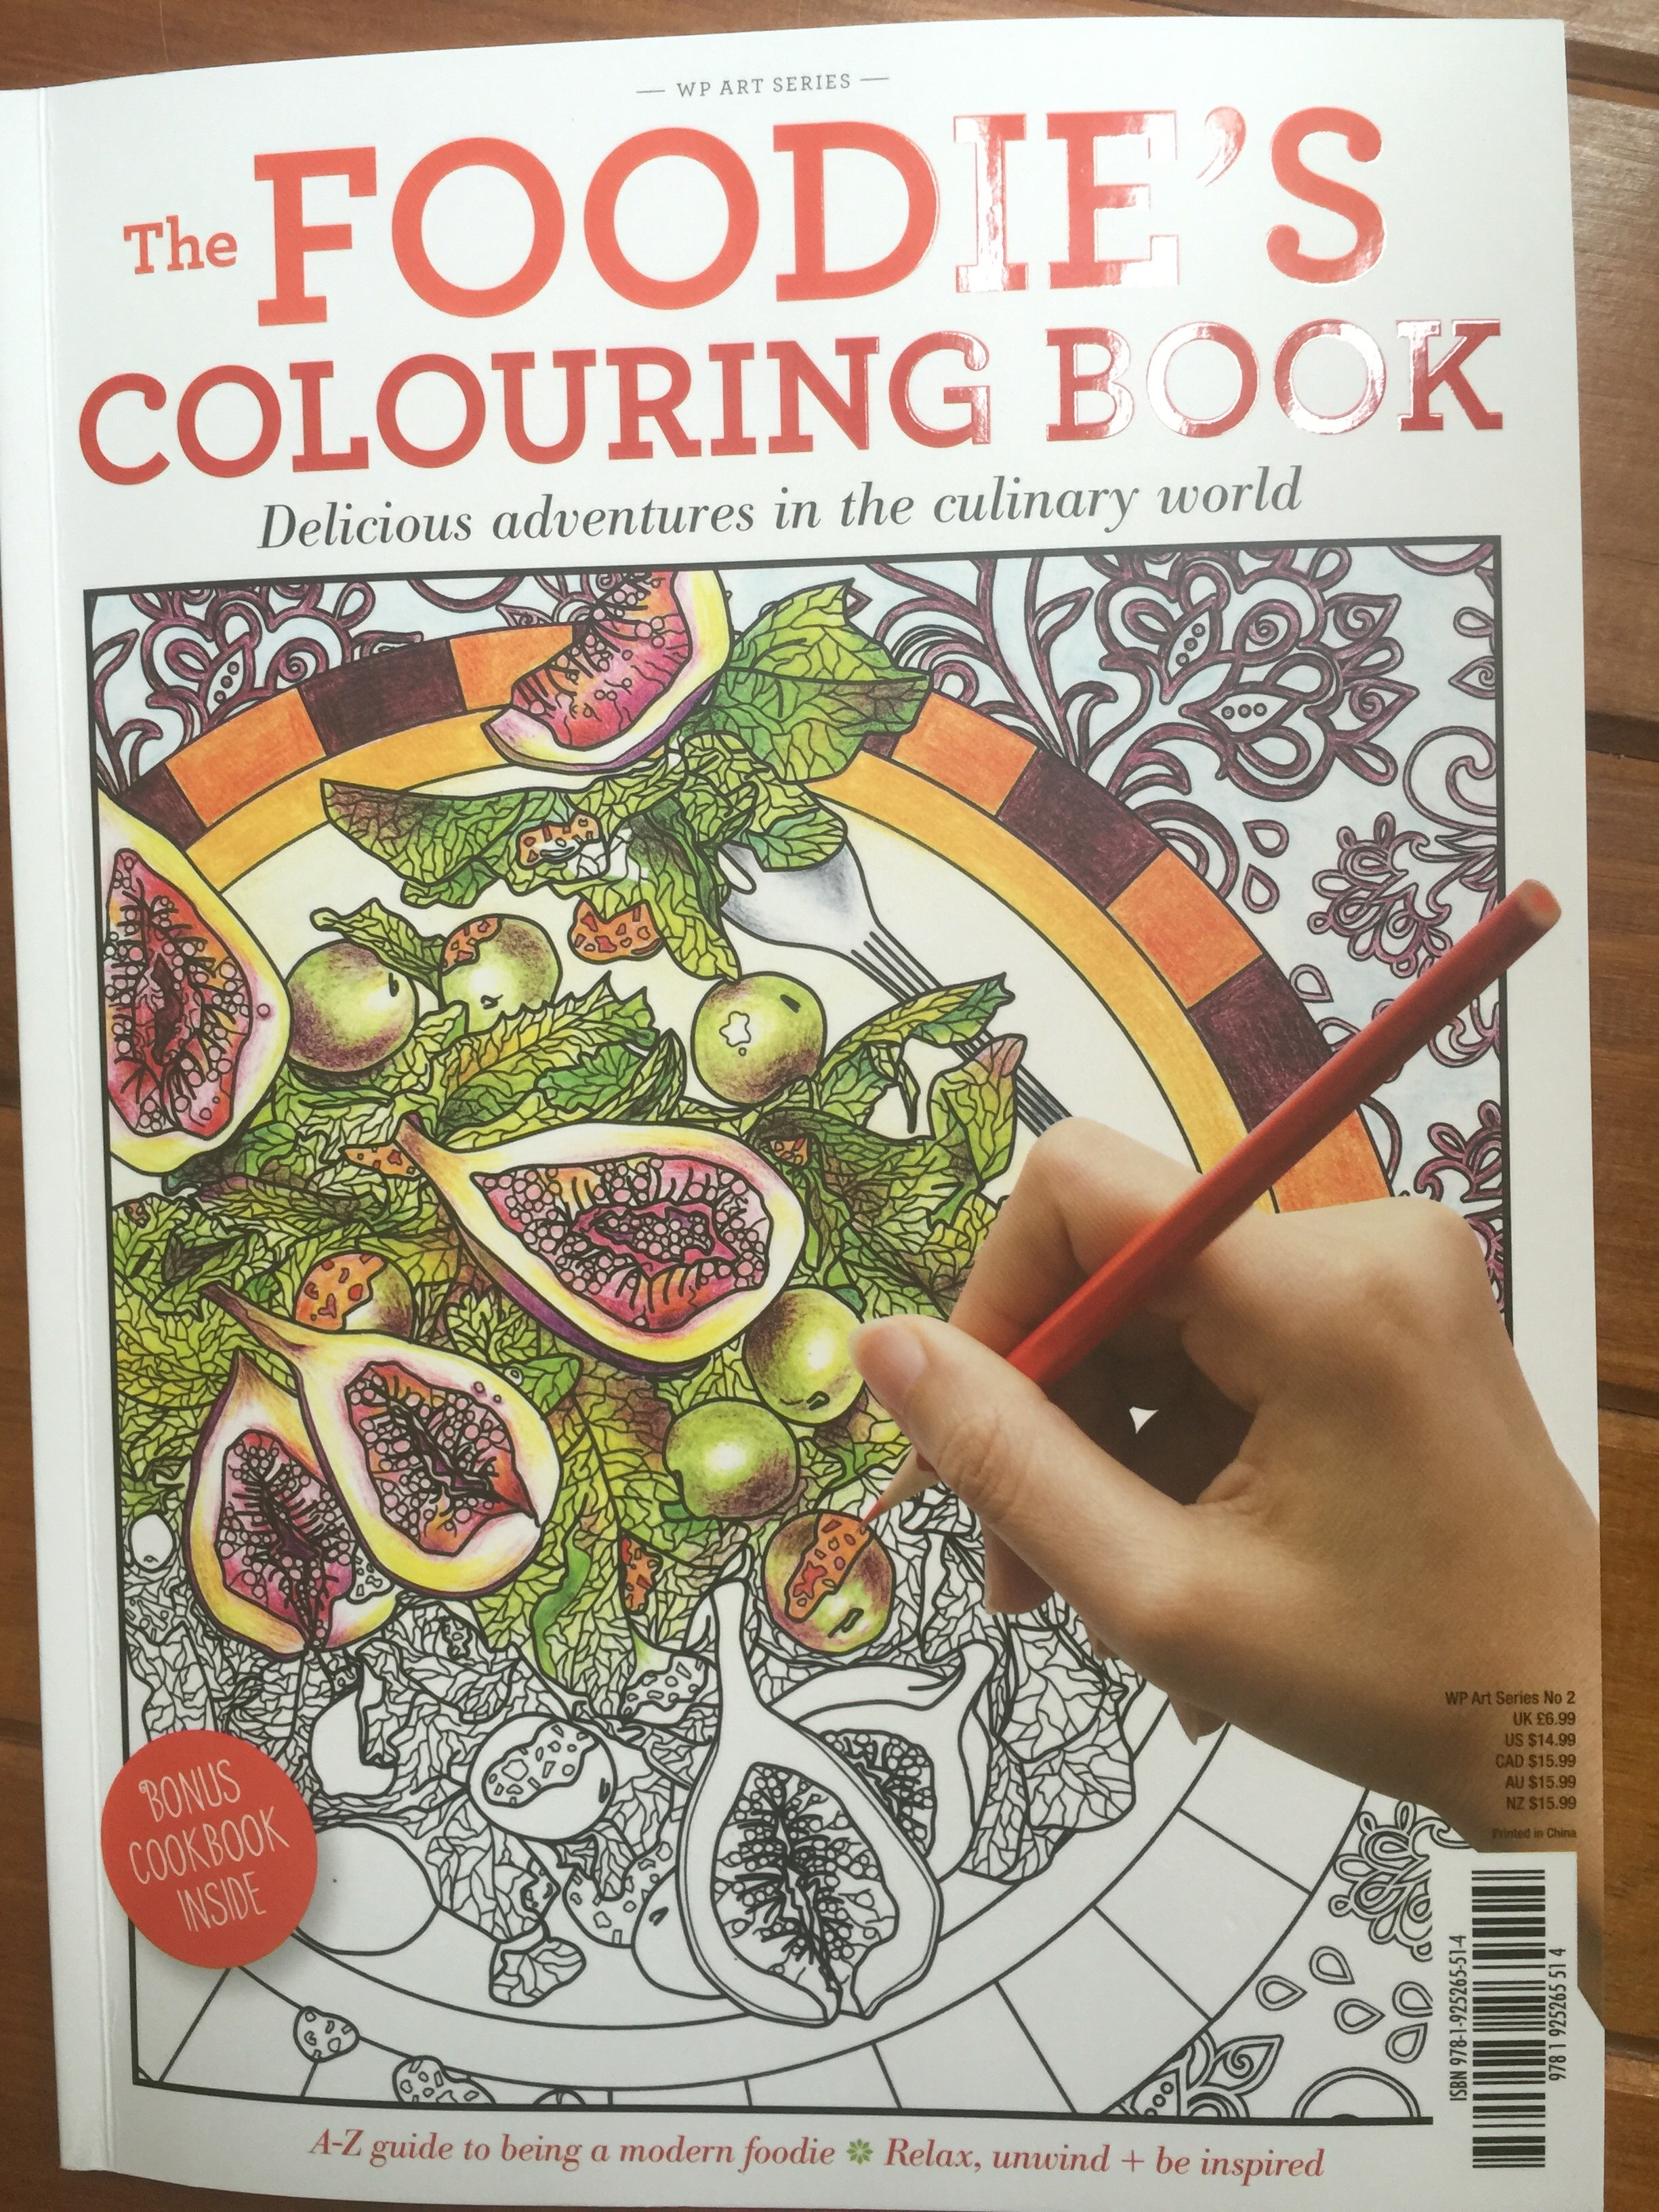 Swearing colouring in book nz - Anti Stress Coloring Book Michaels Colouring Coloring Adult Foodie Love Anti Stress Pencils Book Review